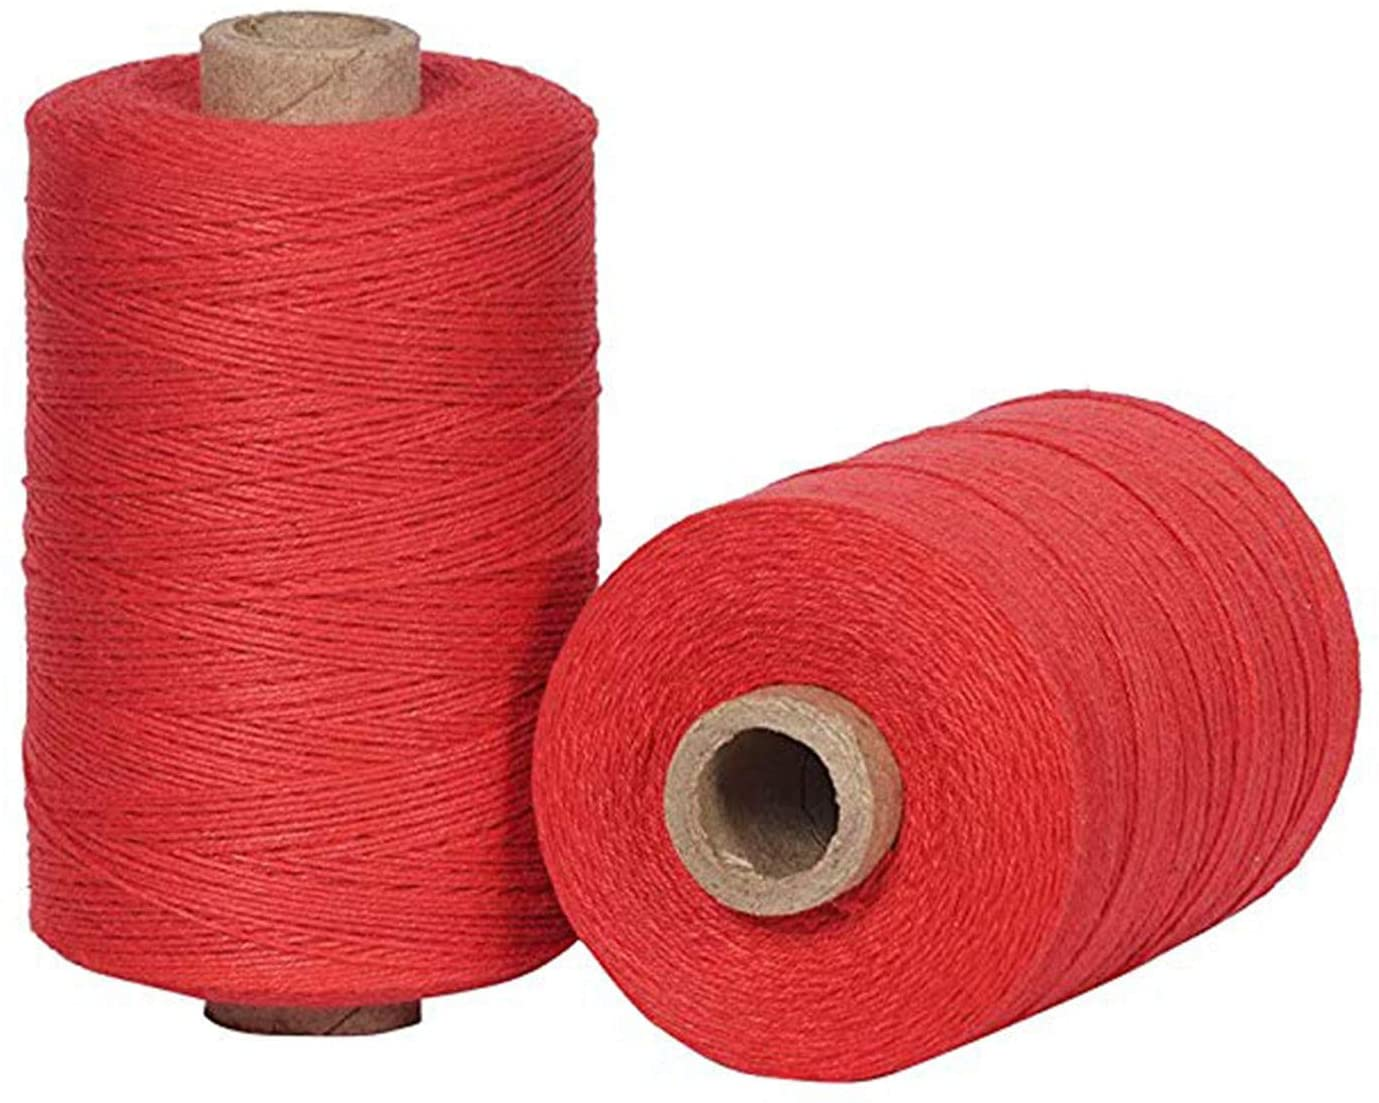 Warp Thread for Weaving Loom - 1 Spool of 850 Yards 8/4 Warp Yarn 100% Cotton - Red Color - Perfect Warping Thread for Weaving Tapestry Carpet Rug Blankets and Other Patterns